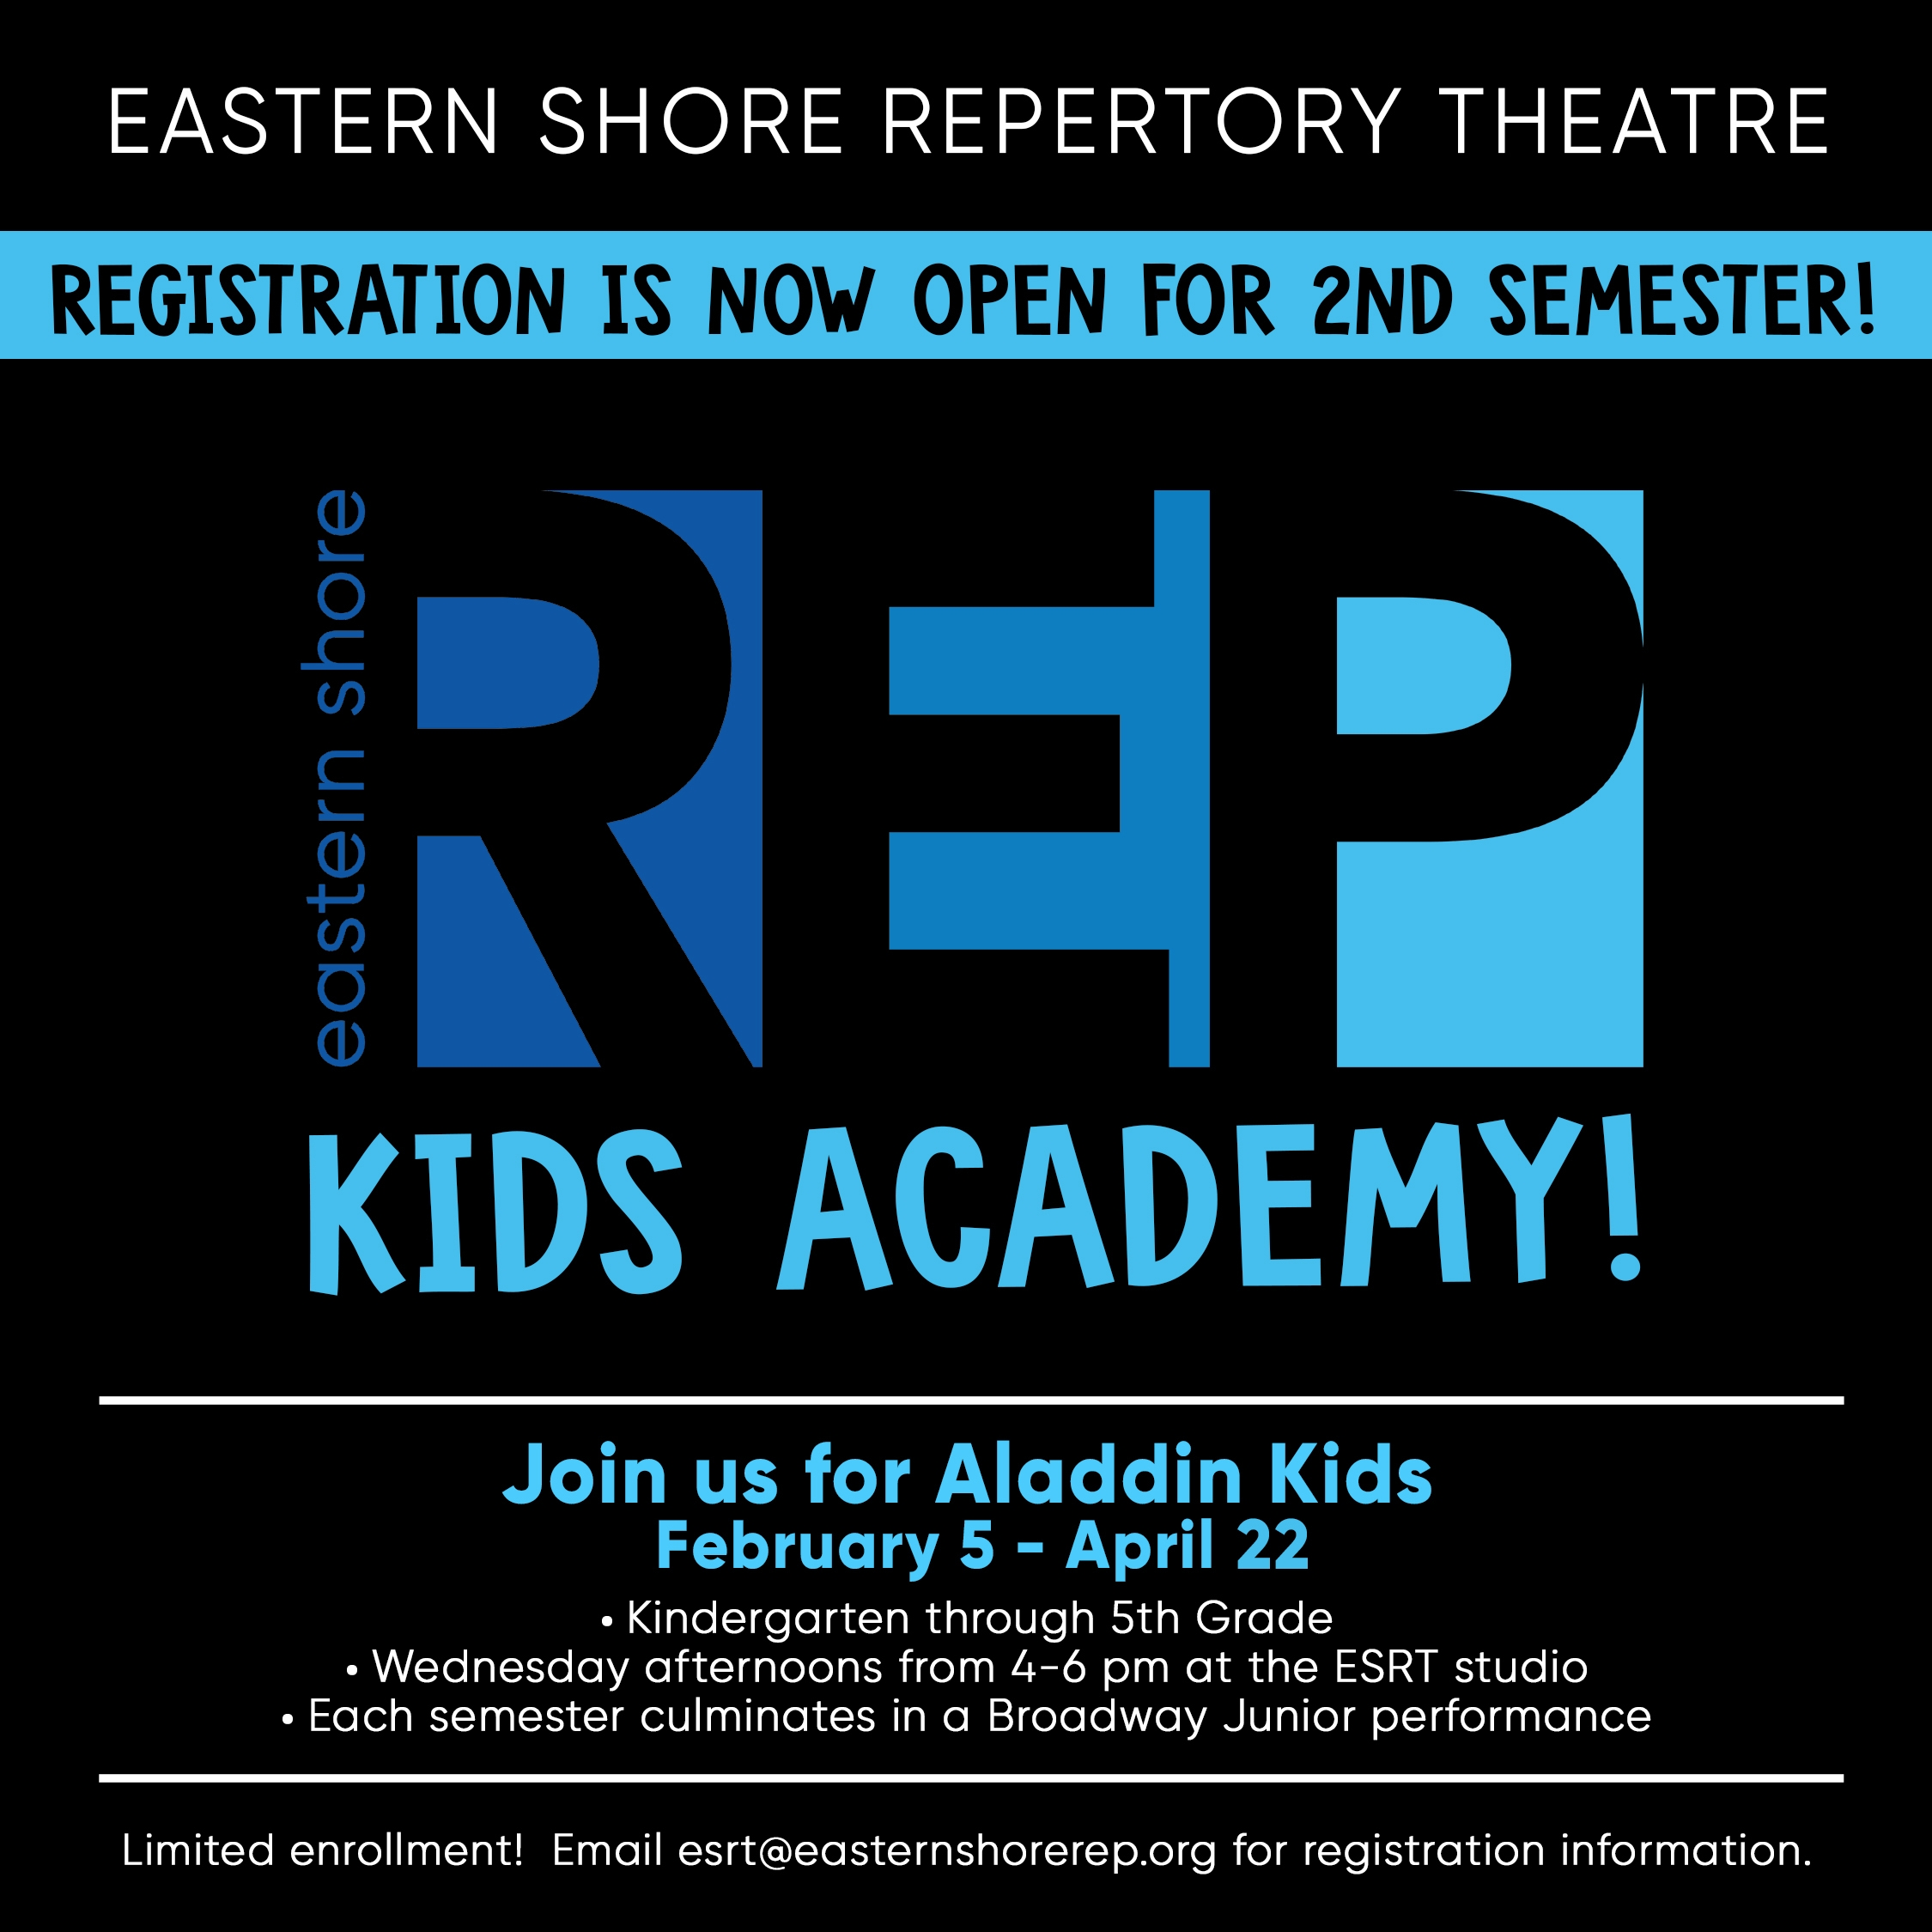 ESRT Kids Academy 2nd Sem post